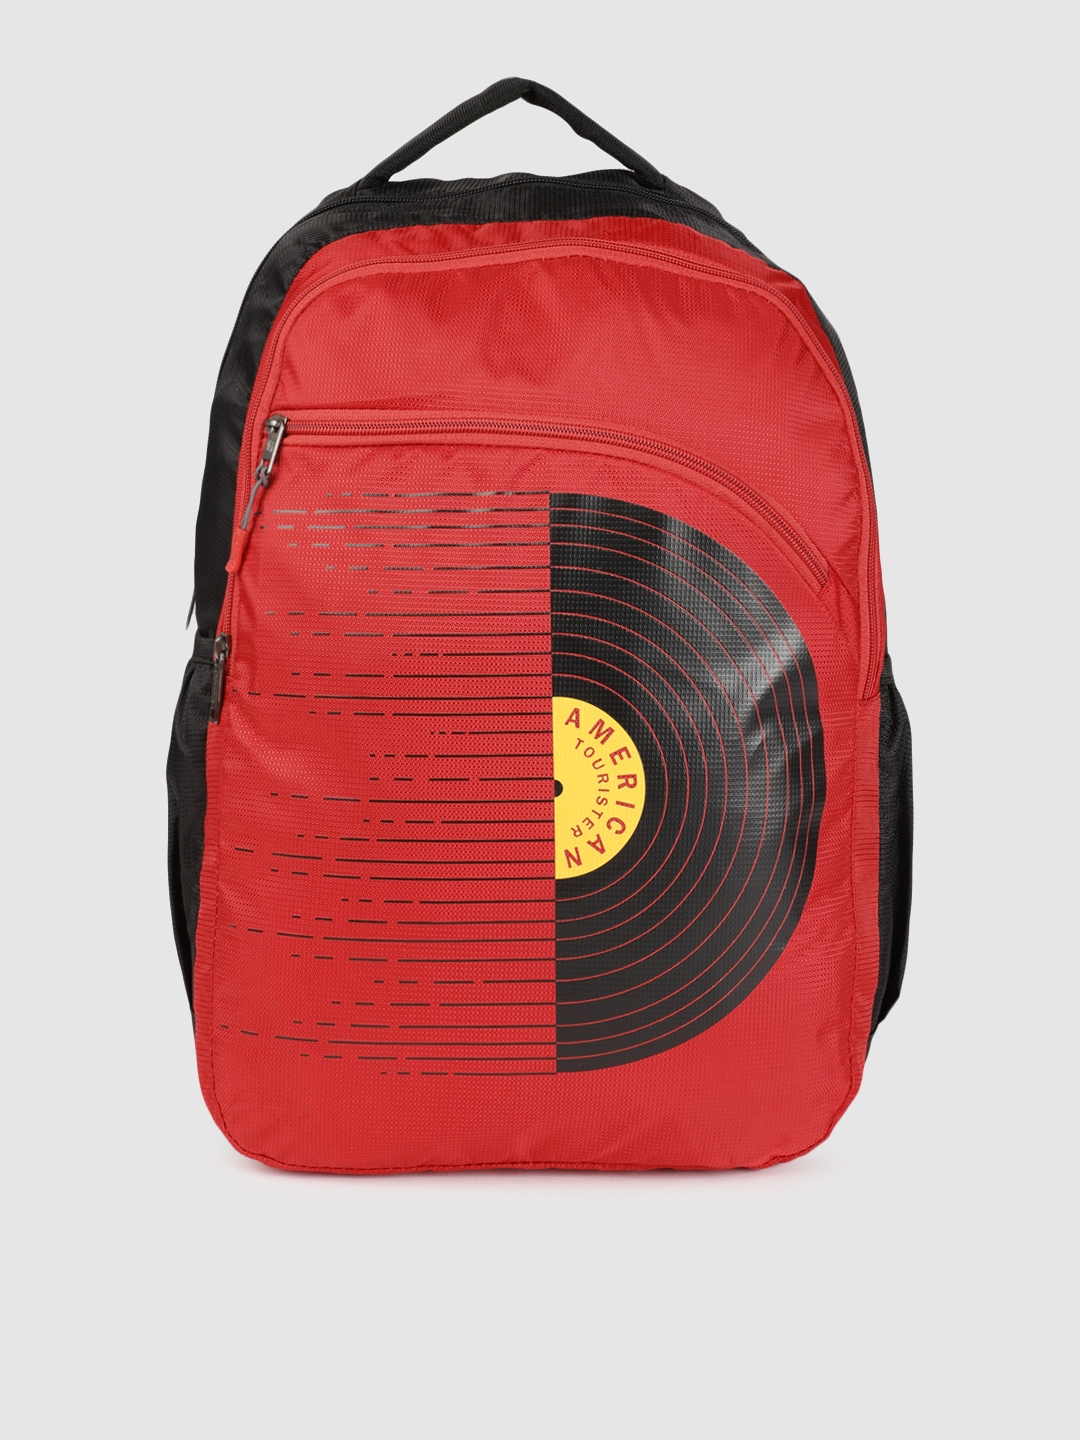 AMERICAN TOURISTER Unisex Red   Black Graphic AMT TIMBO+ Backpack